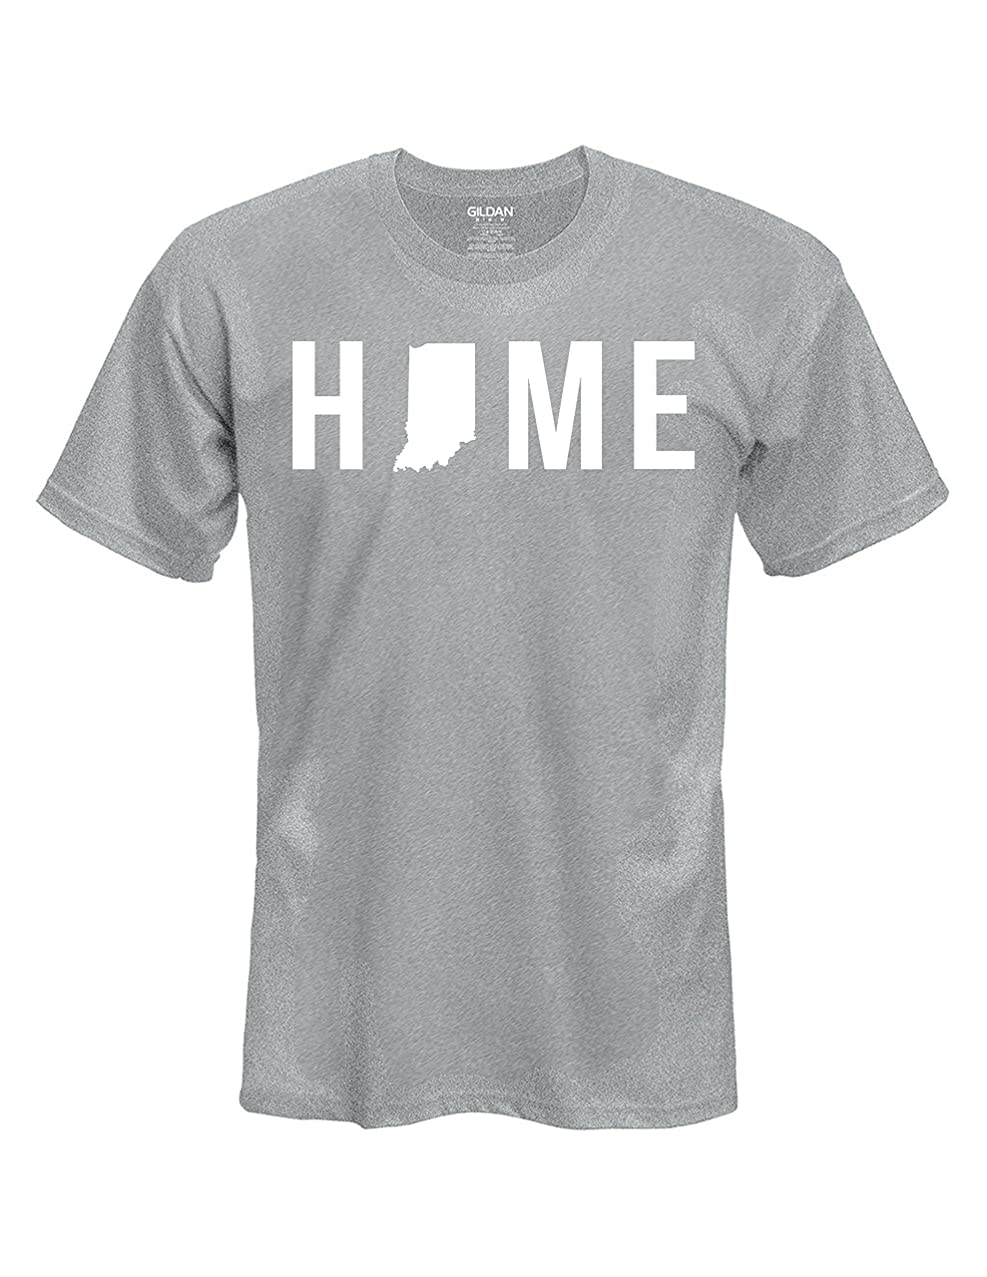 Mens/Womens Indiana HOME State Gray T-Shirt sizes: S-XXL